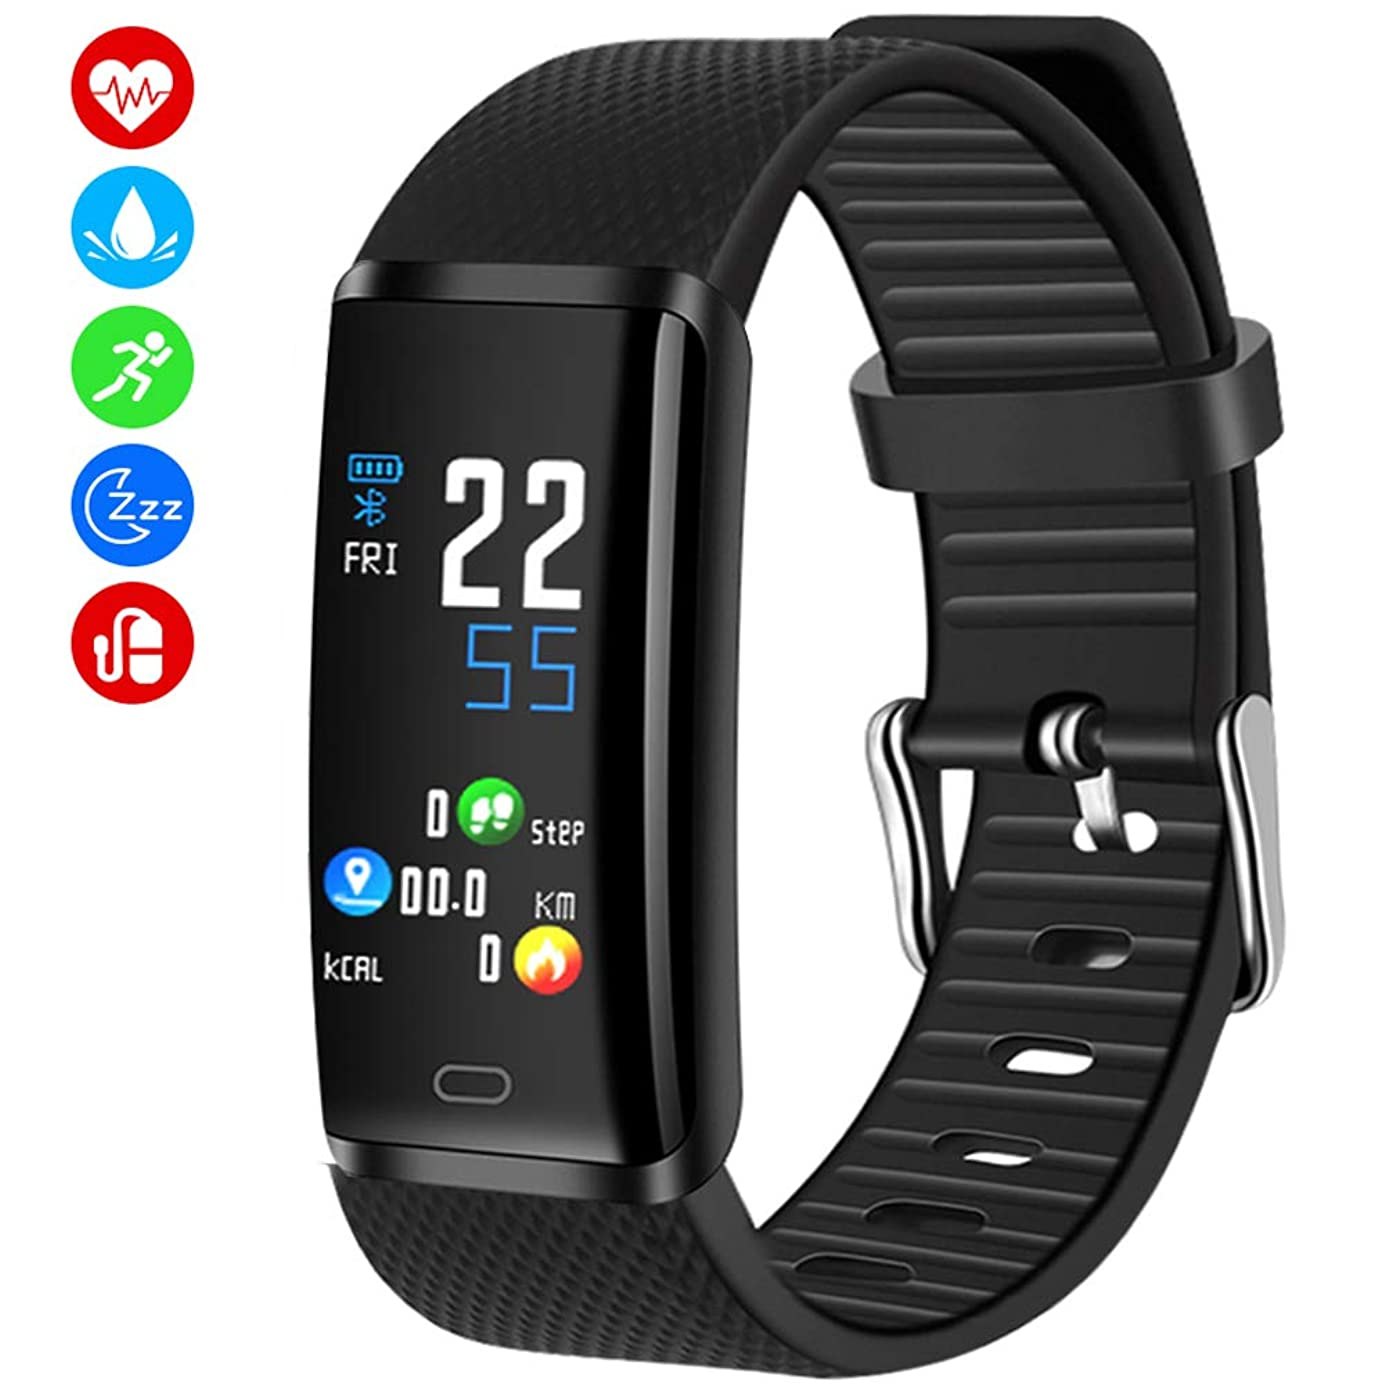 MINLUK Fitness Tracker, Activity Tracker with Pedometer Blood Pressure Heart Rate Monitor IP67 Waterproof Wristbands, Calorie Counter Watch, Sleep Monitor, Calls/SNS/SMS Remind for Men Women